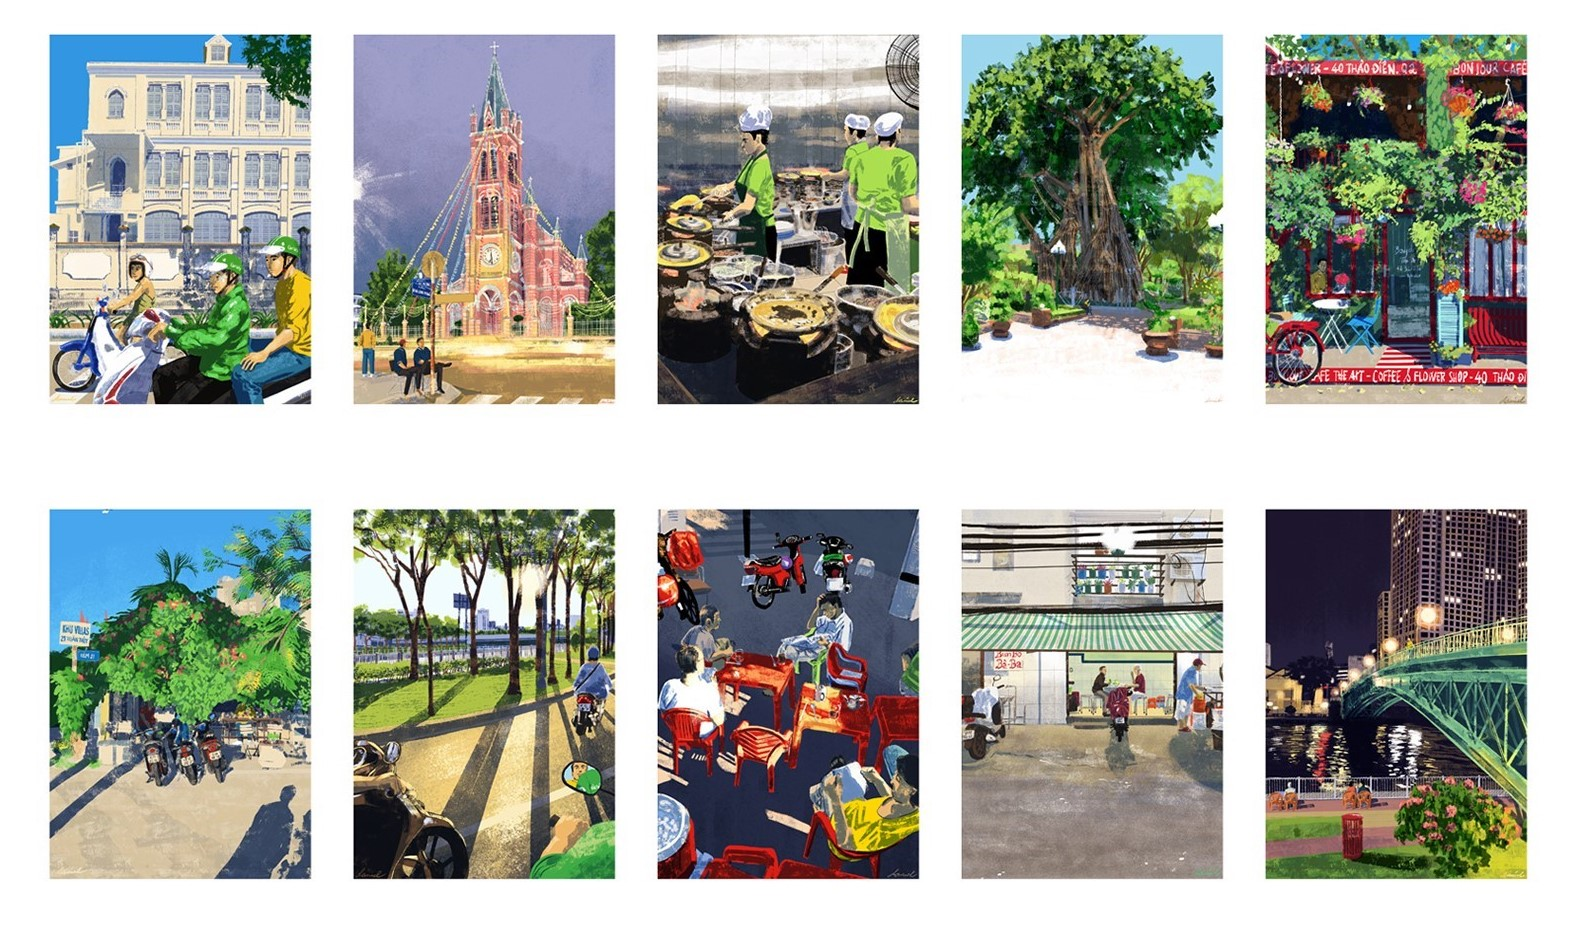 Filipino artist spotlights Ho Chi Minh City from 100 perspectives in viral collection